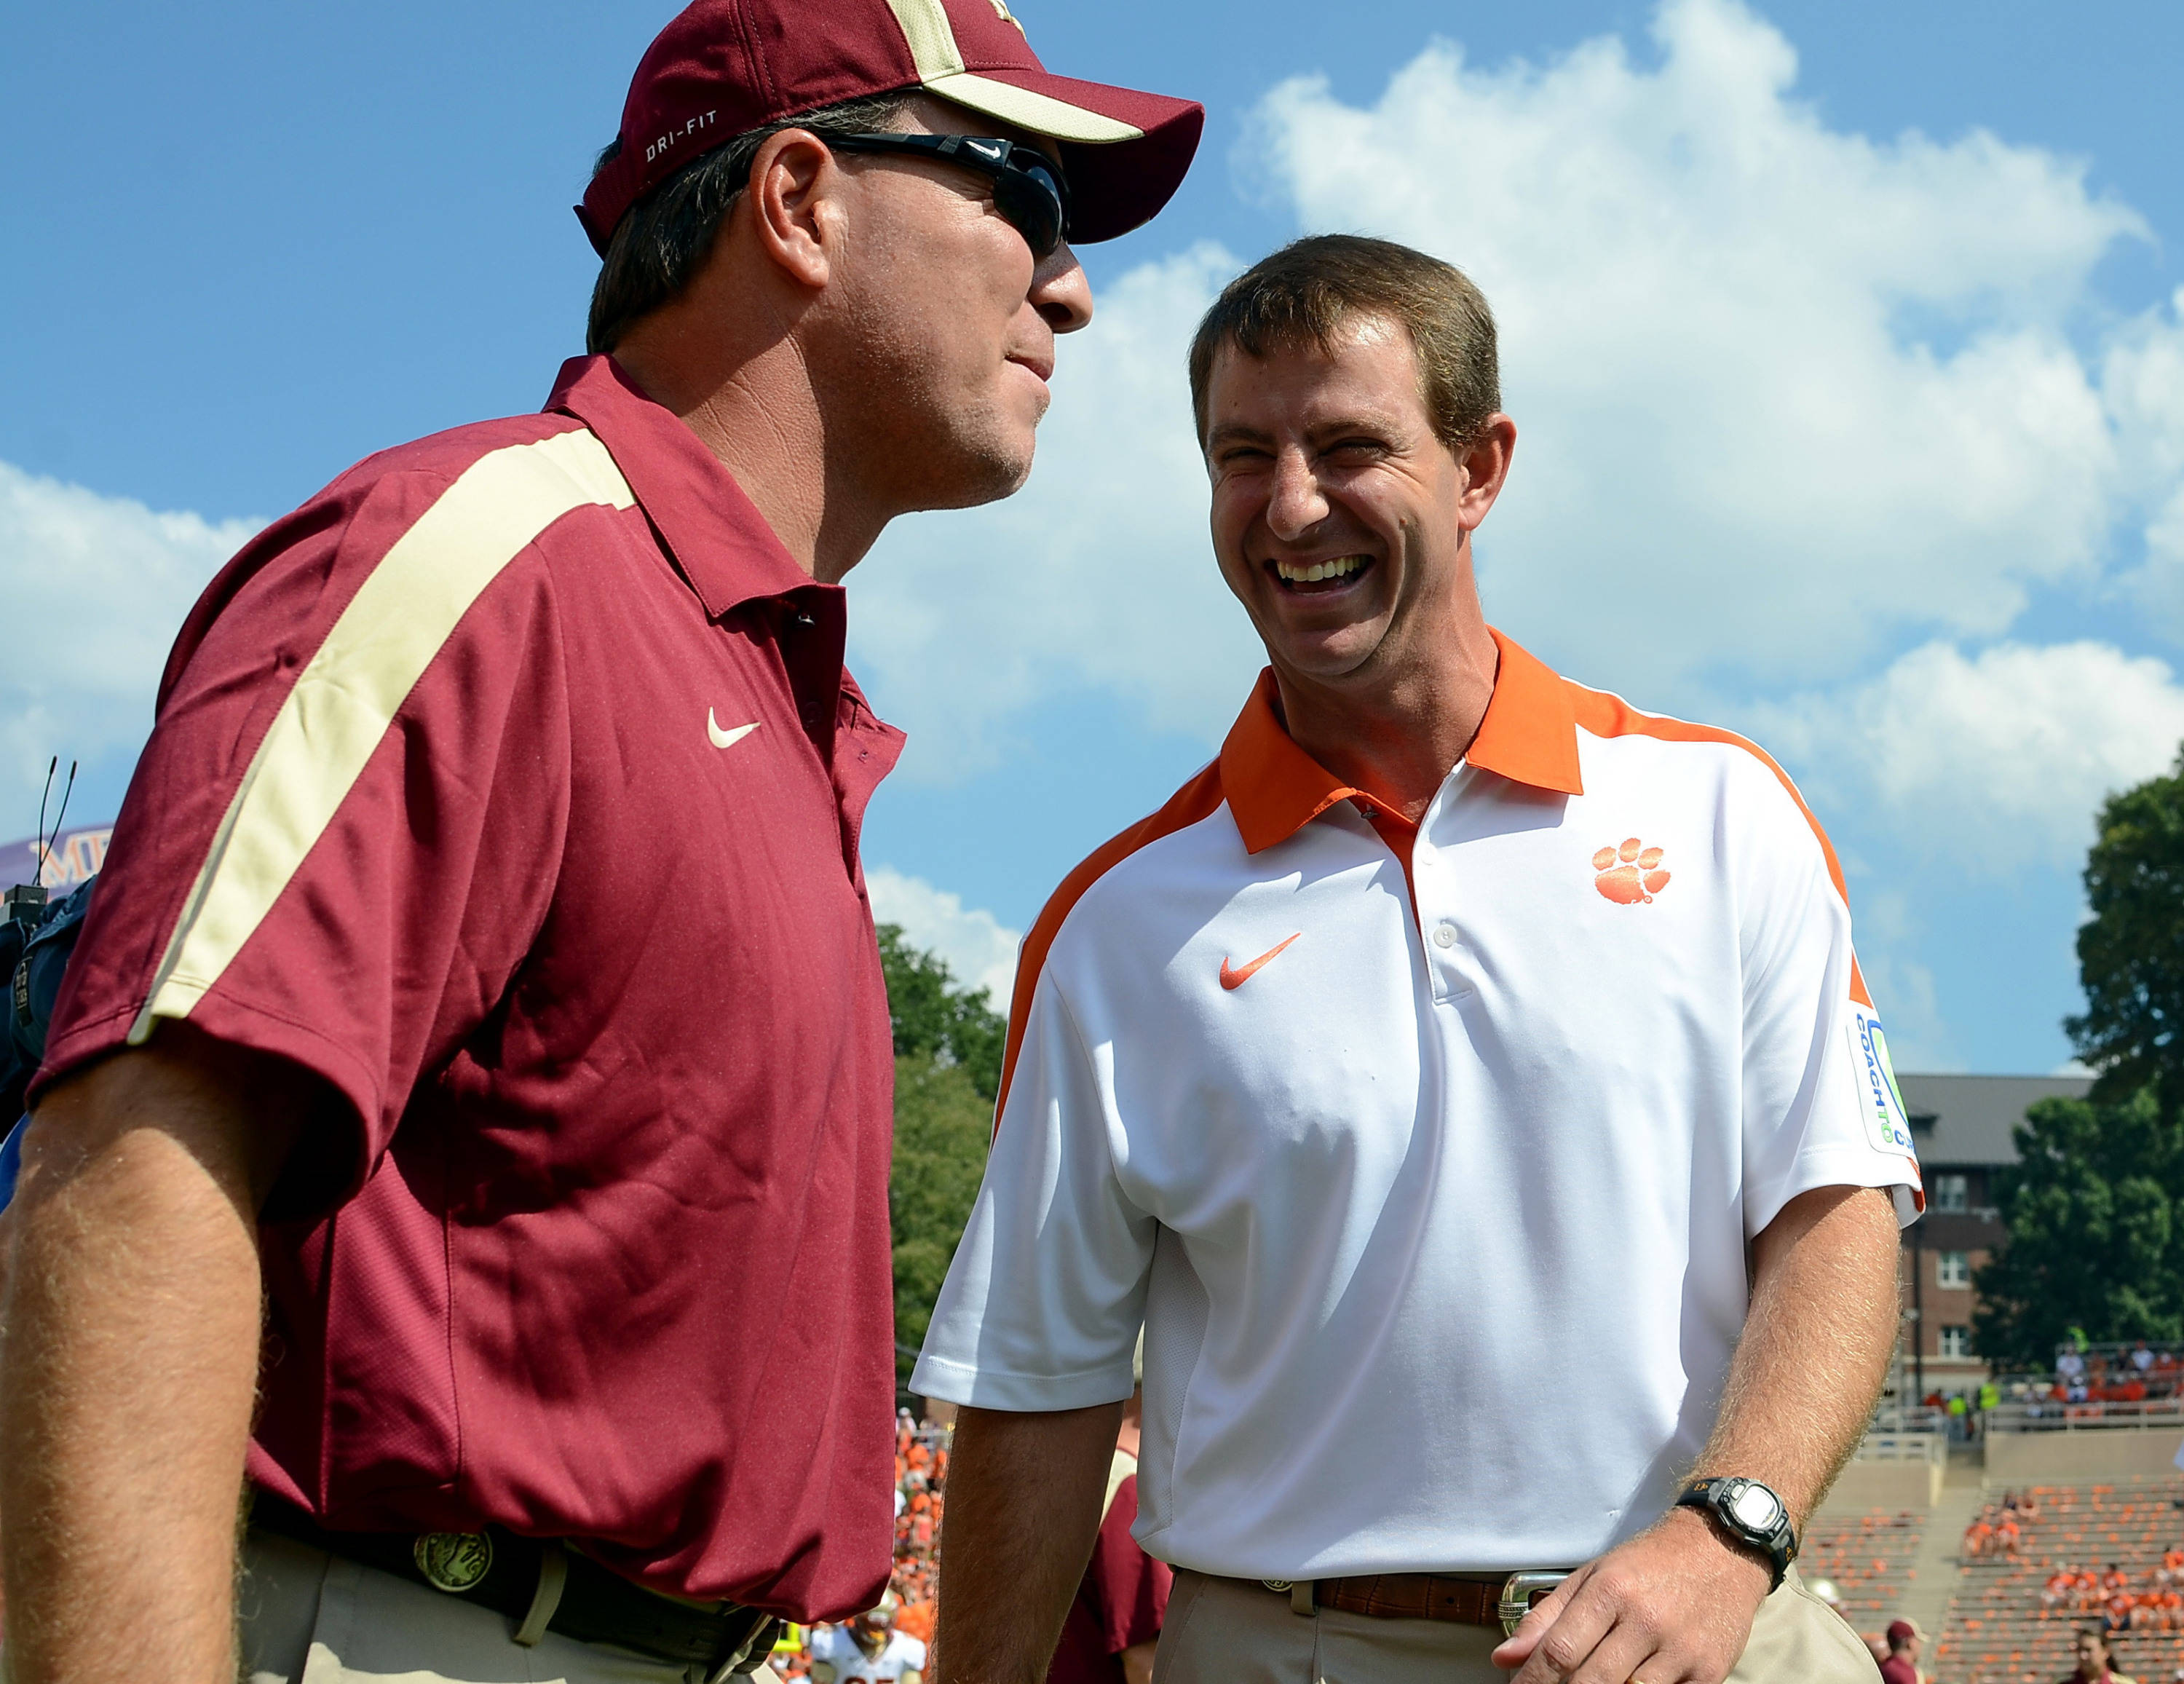 Florida State head coach Jimbo Fisher, left, and  Clemson head coach Dabo Swinney talk before the start of an NCAA college football game, Saturday, Sept. 24, 2011, at Memorial Stadium in Clemson, S.C.  (AP Photo/ Richard Shiro)